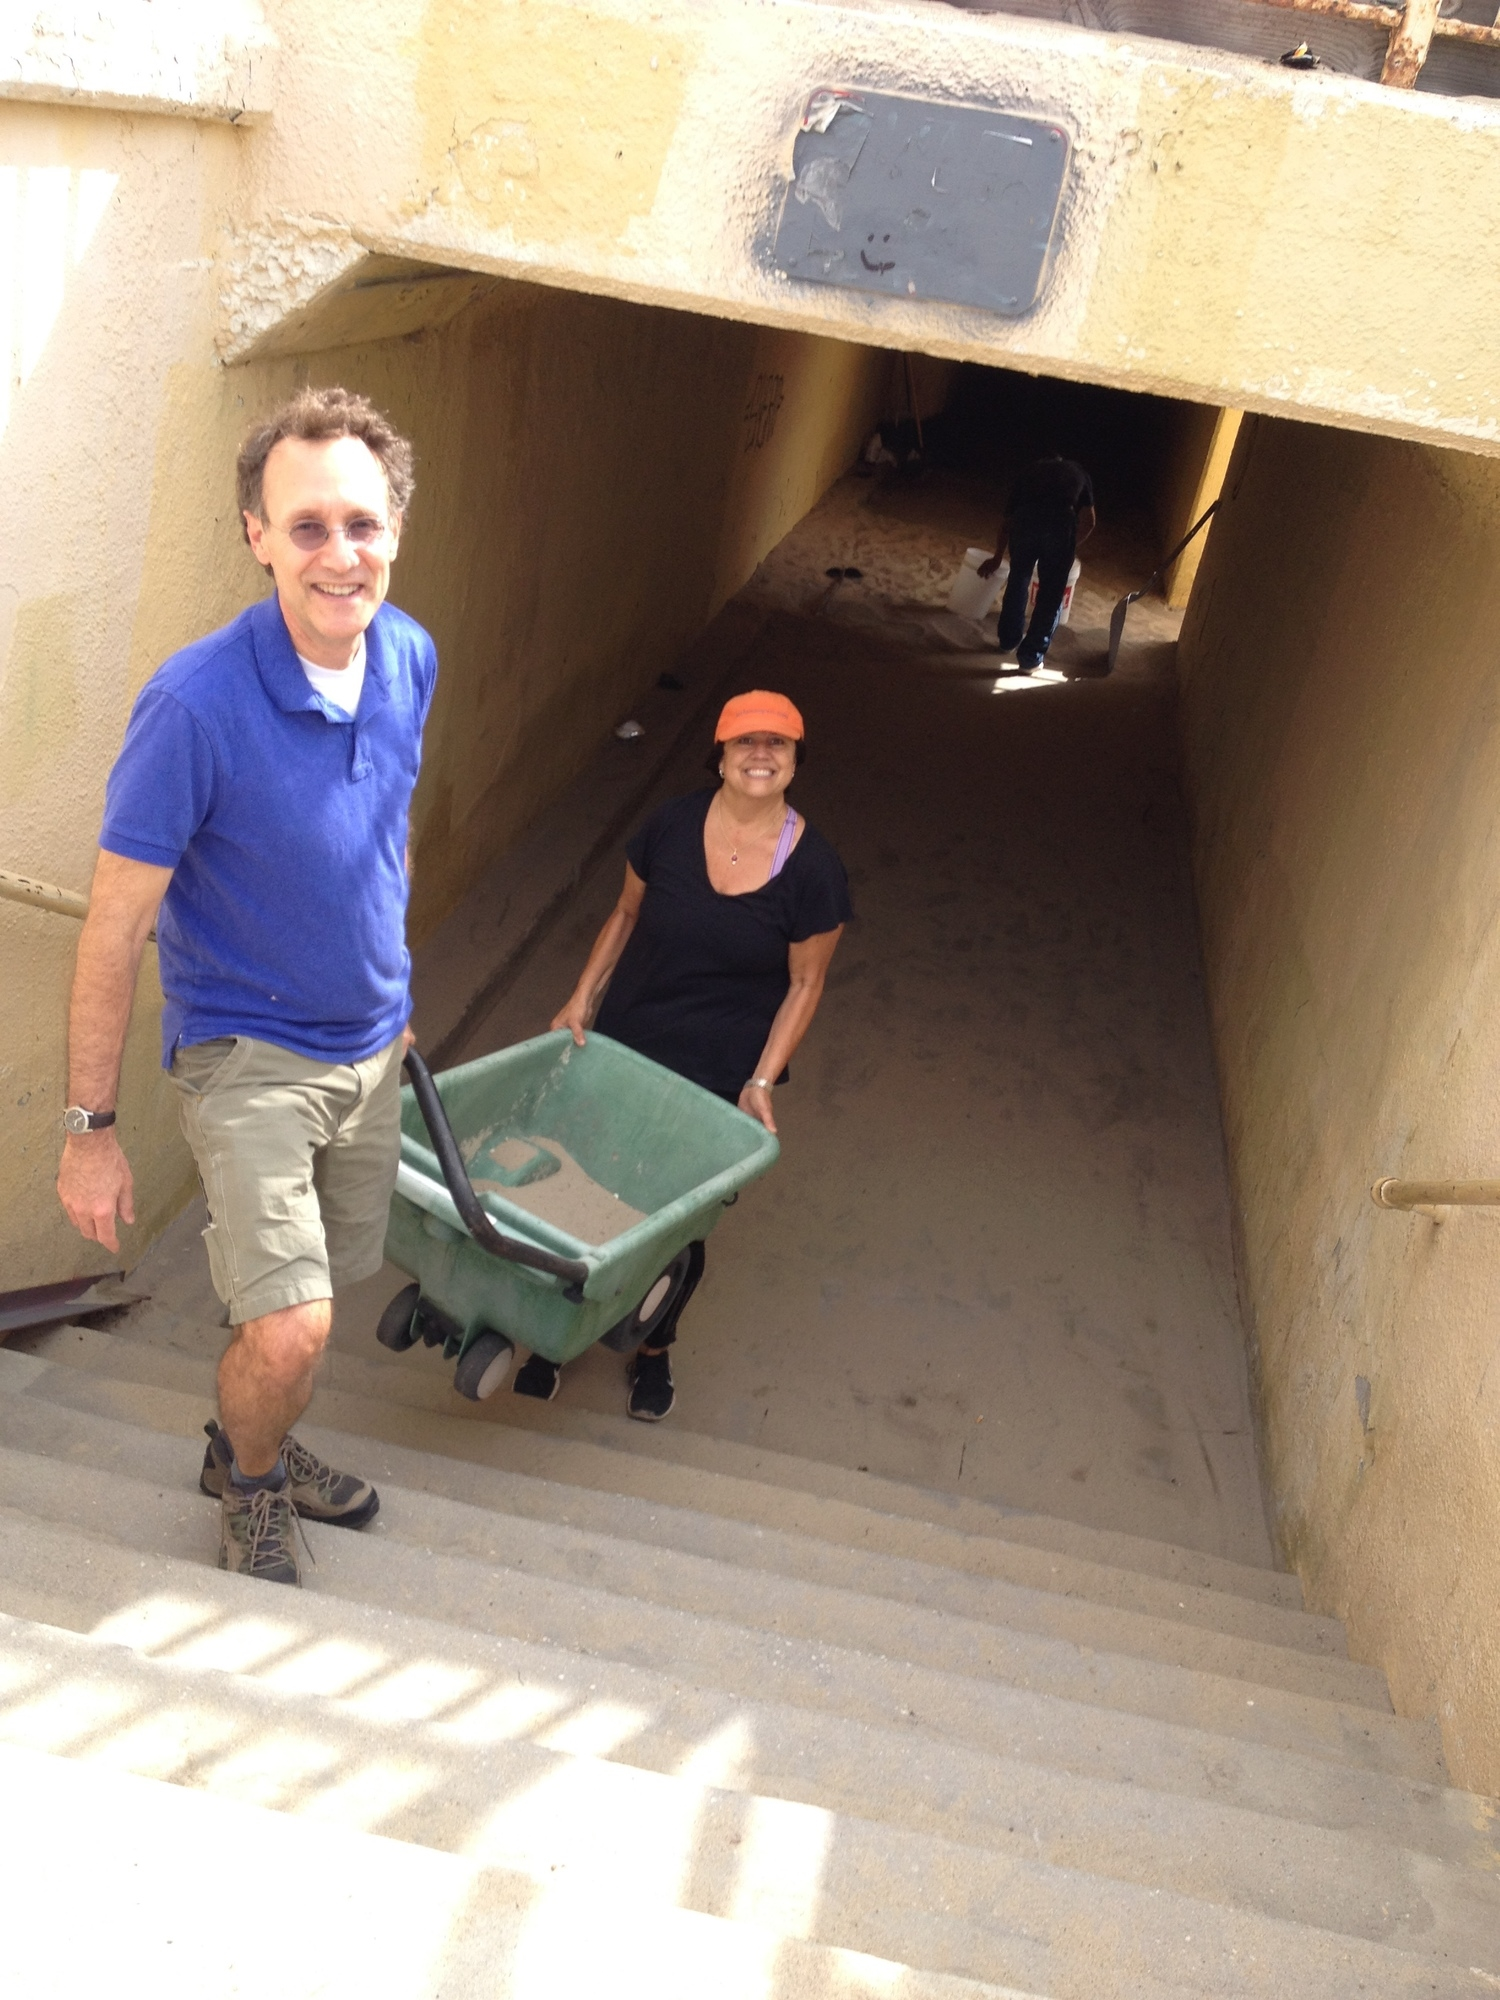 Wes and Sharon carting sand out of the tunnel